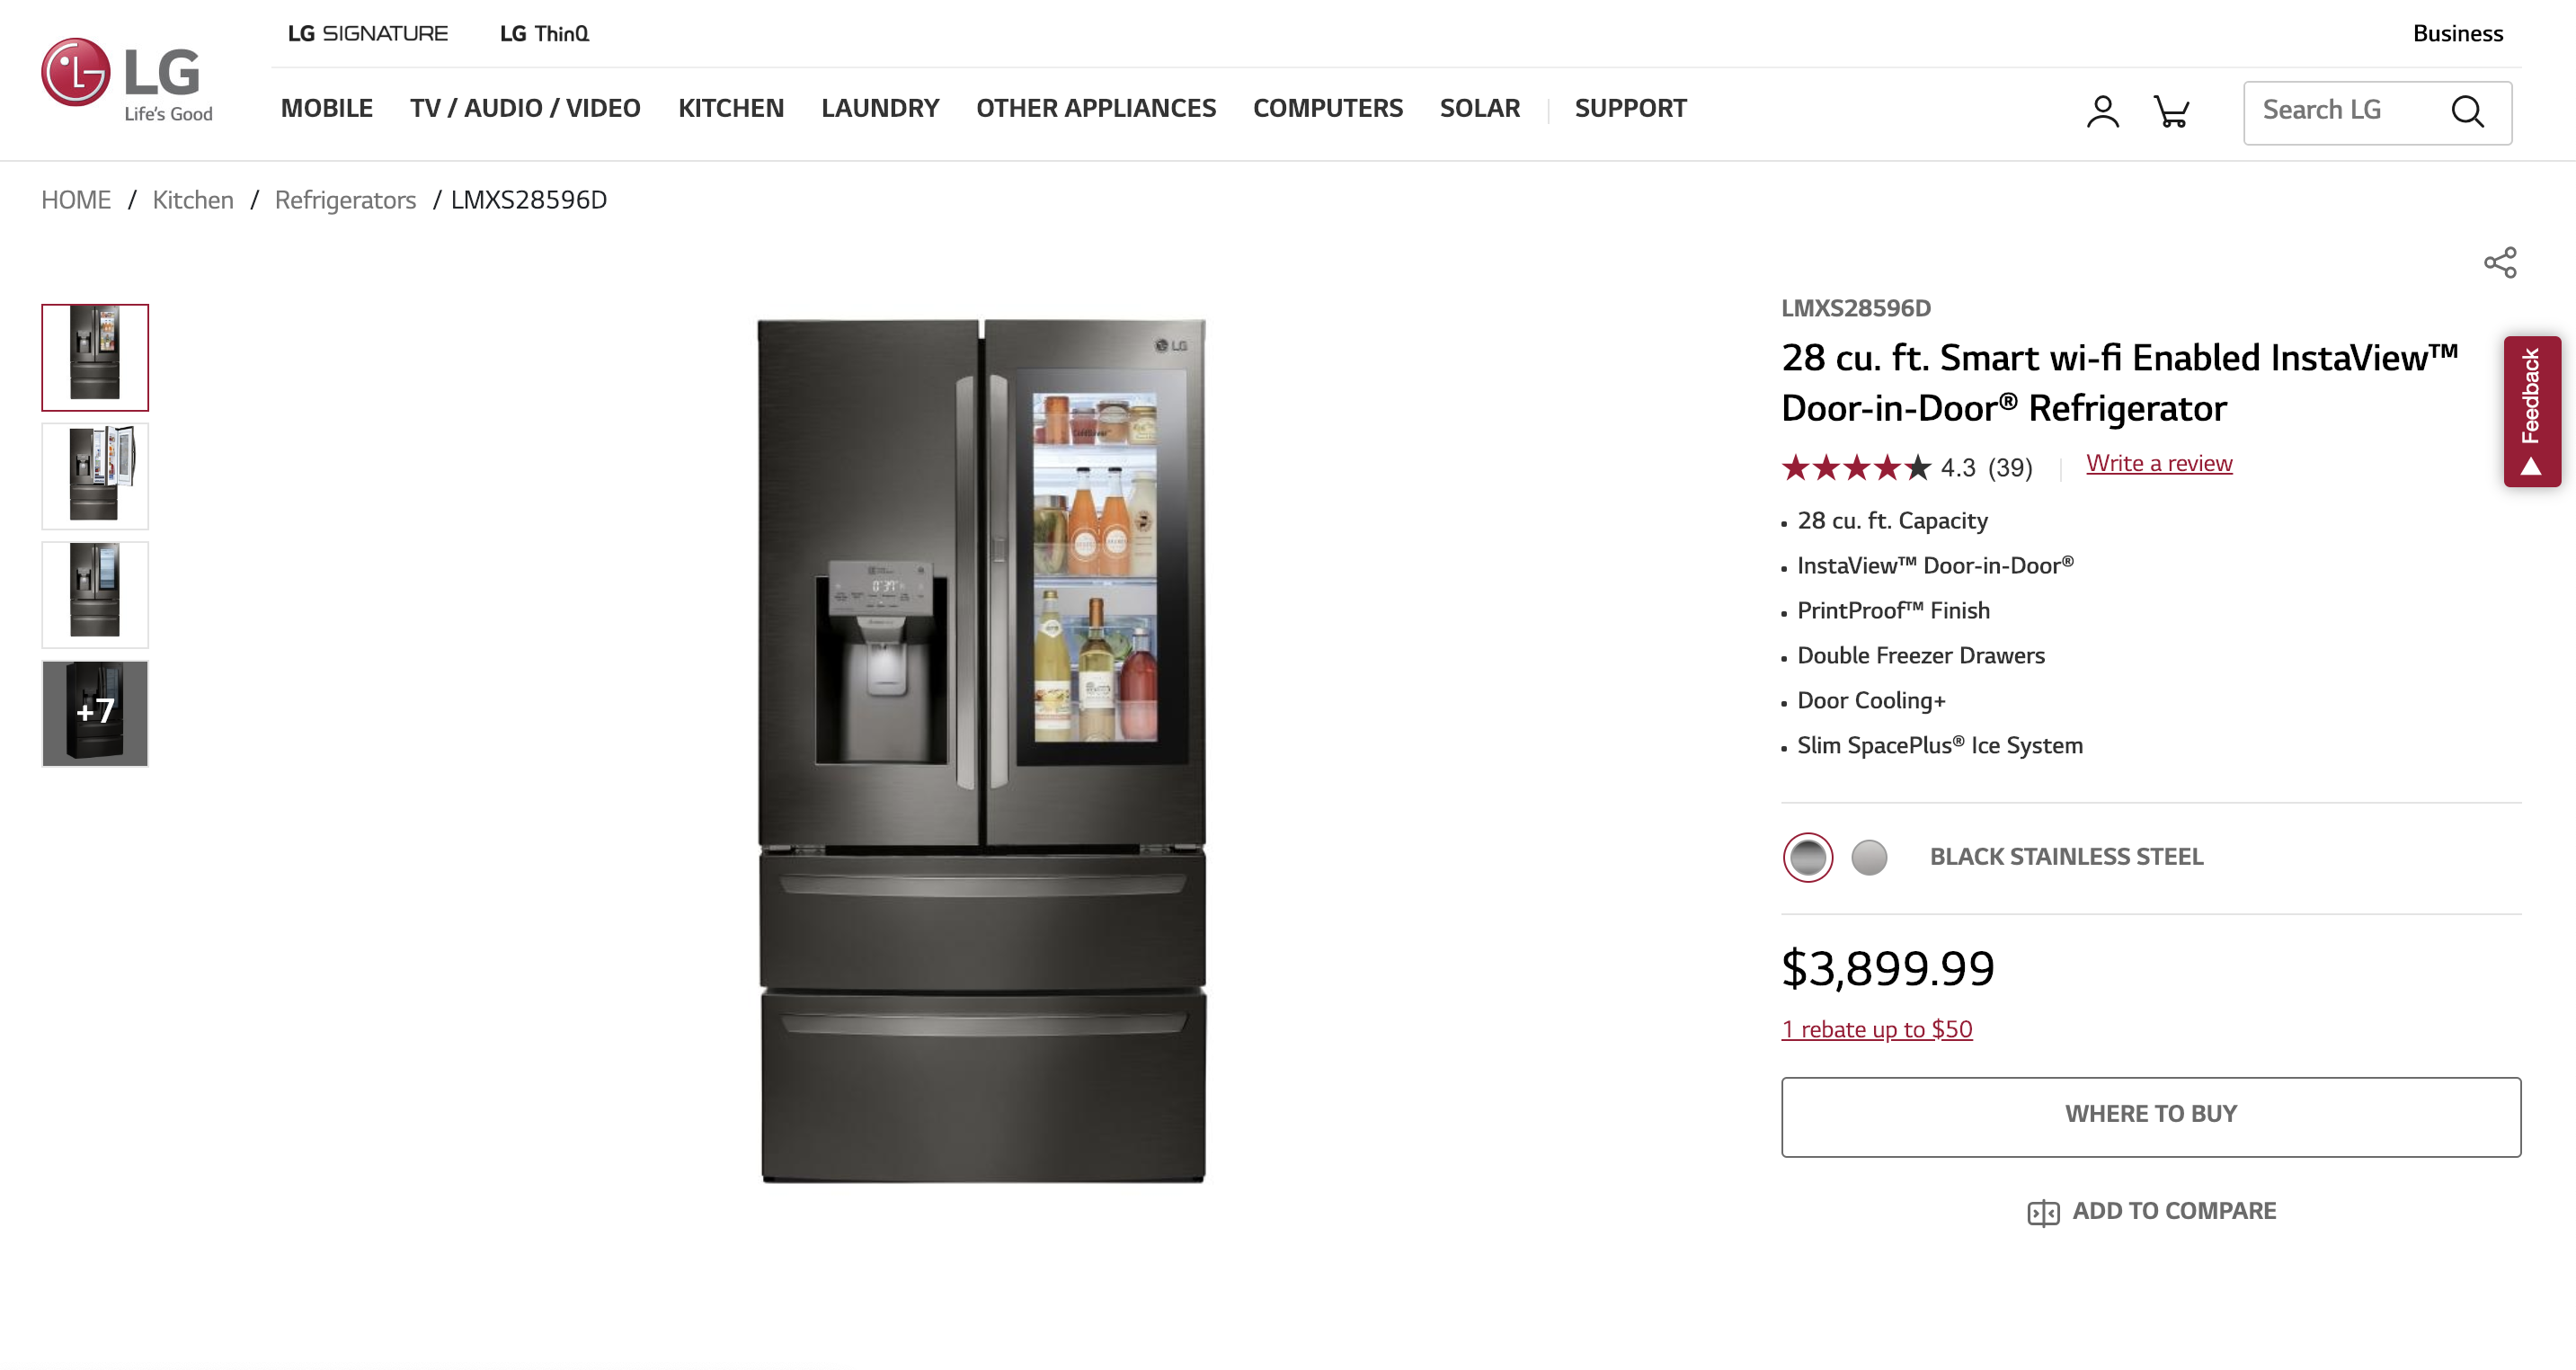 LG-smart-refrigerator-product-detail-page